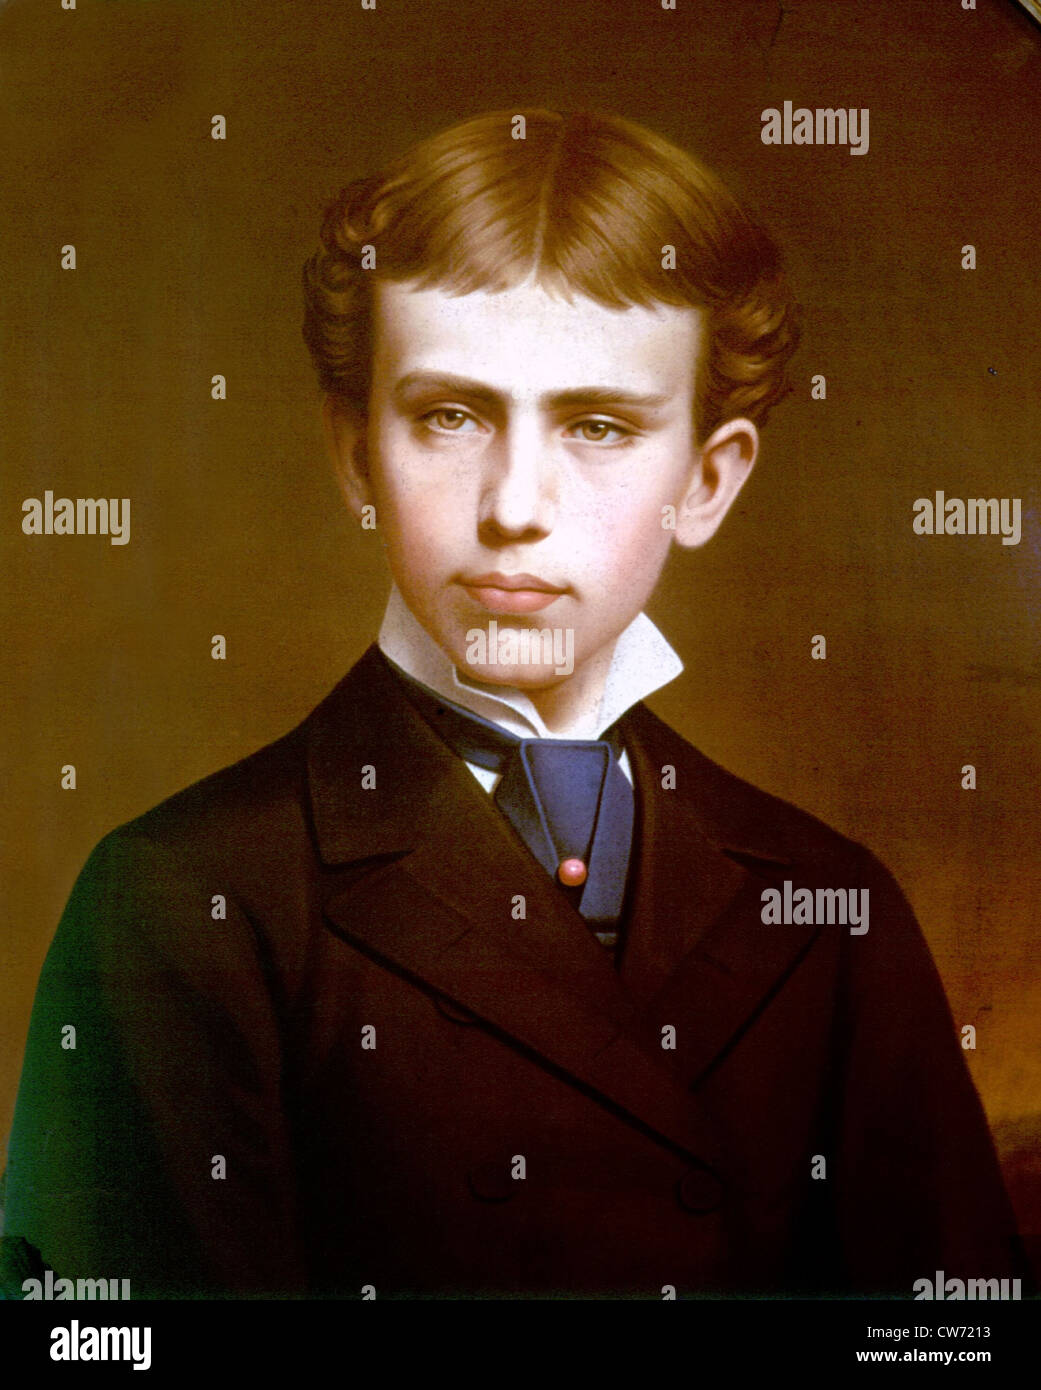 Archduke Rudolph of Habsburg as an adolescent - Stock Image